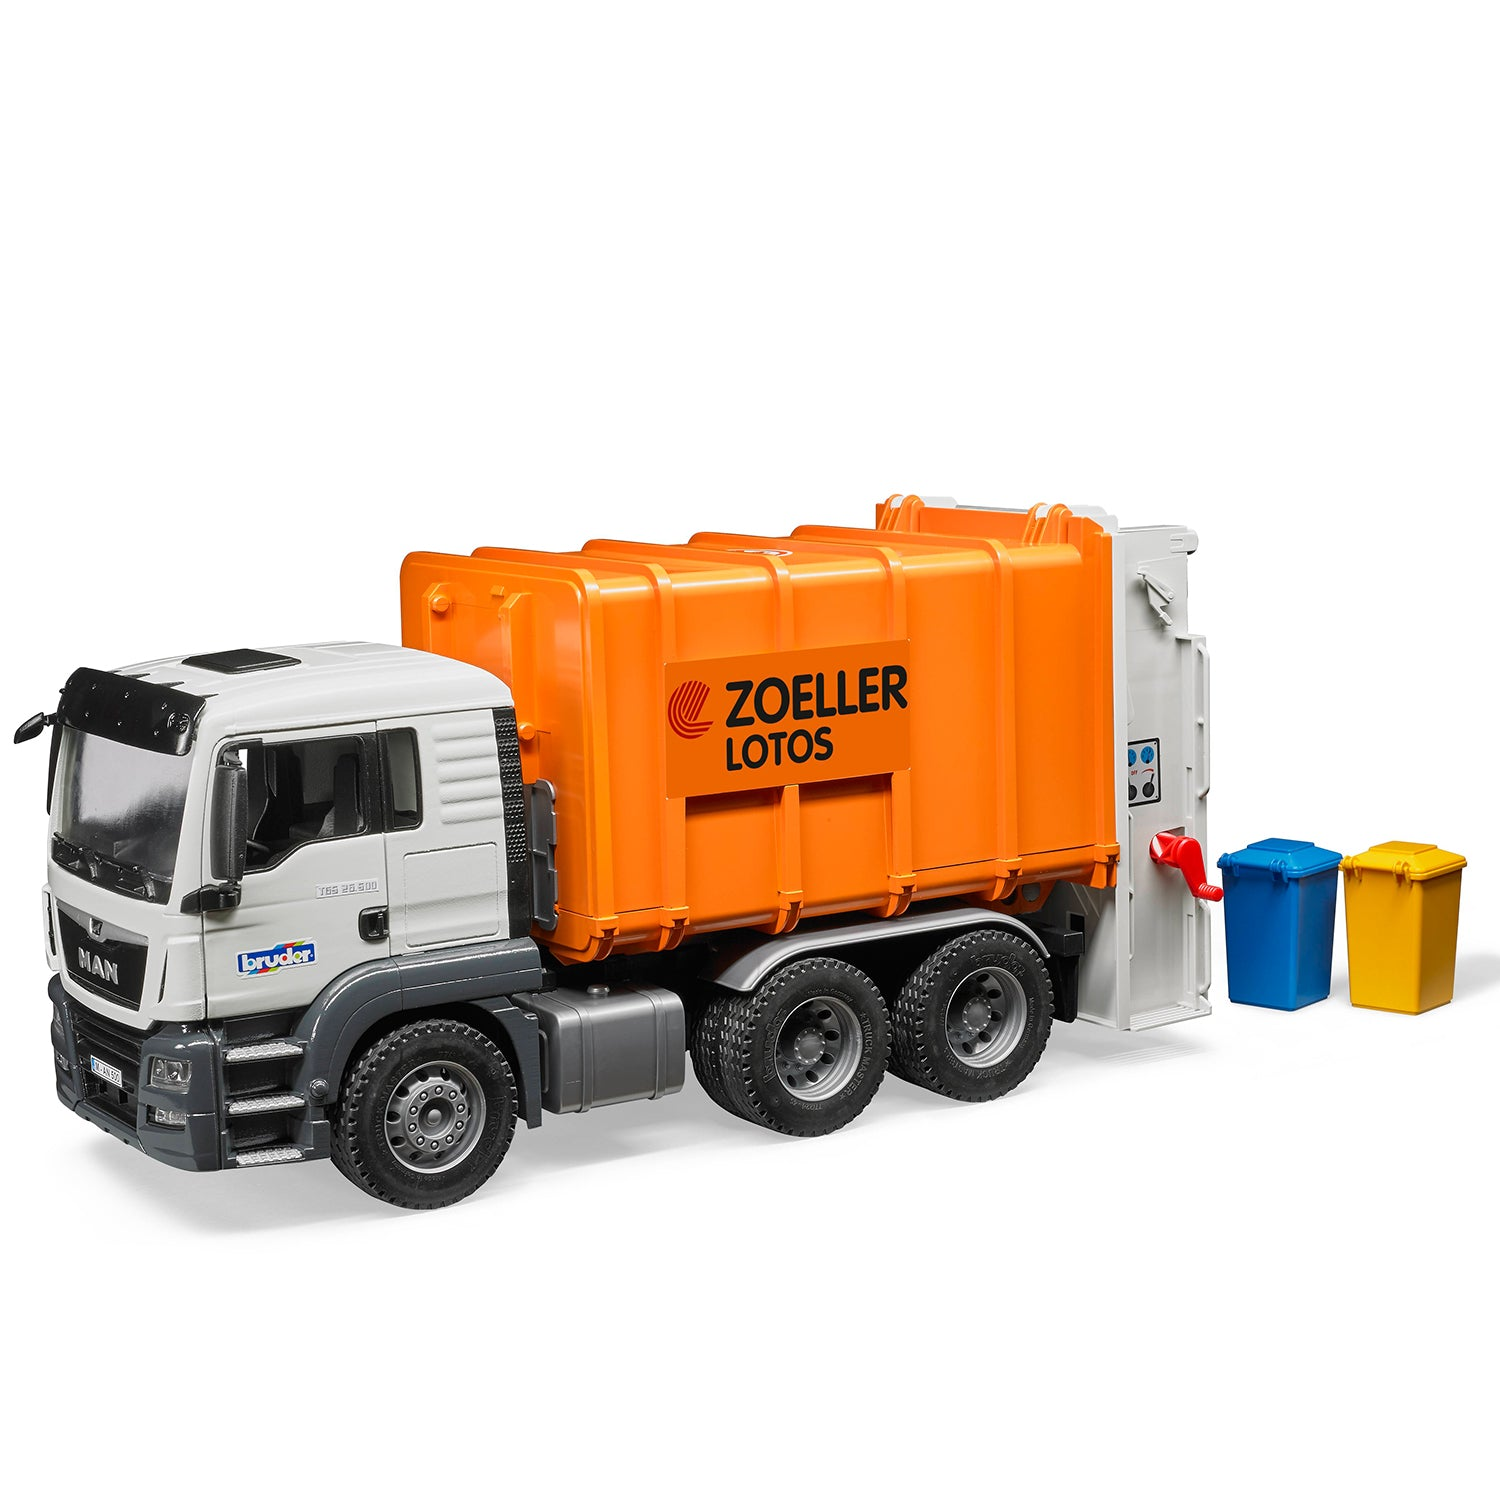 MAN TGS Rear Loading Garbage Truck (orange)